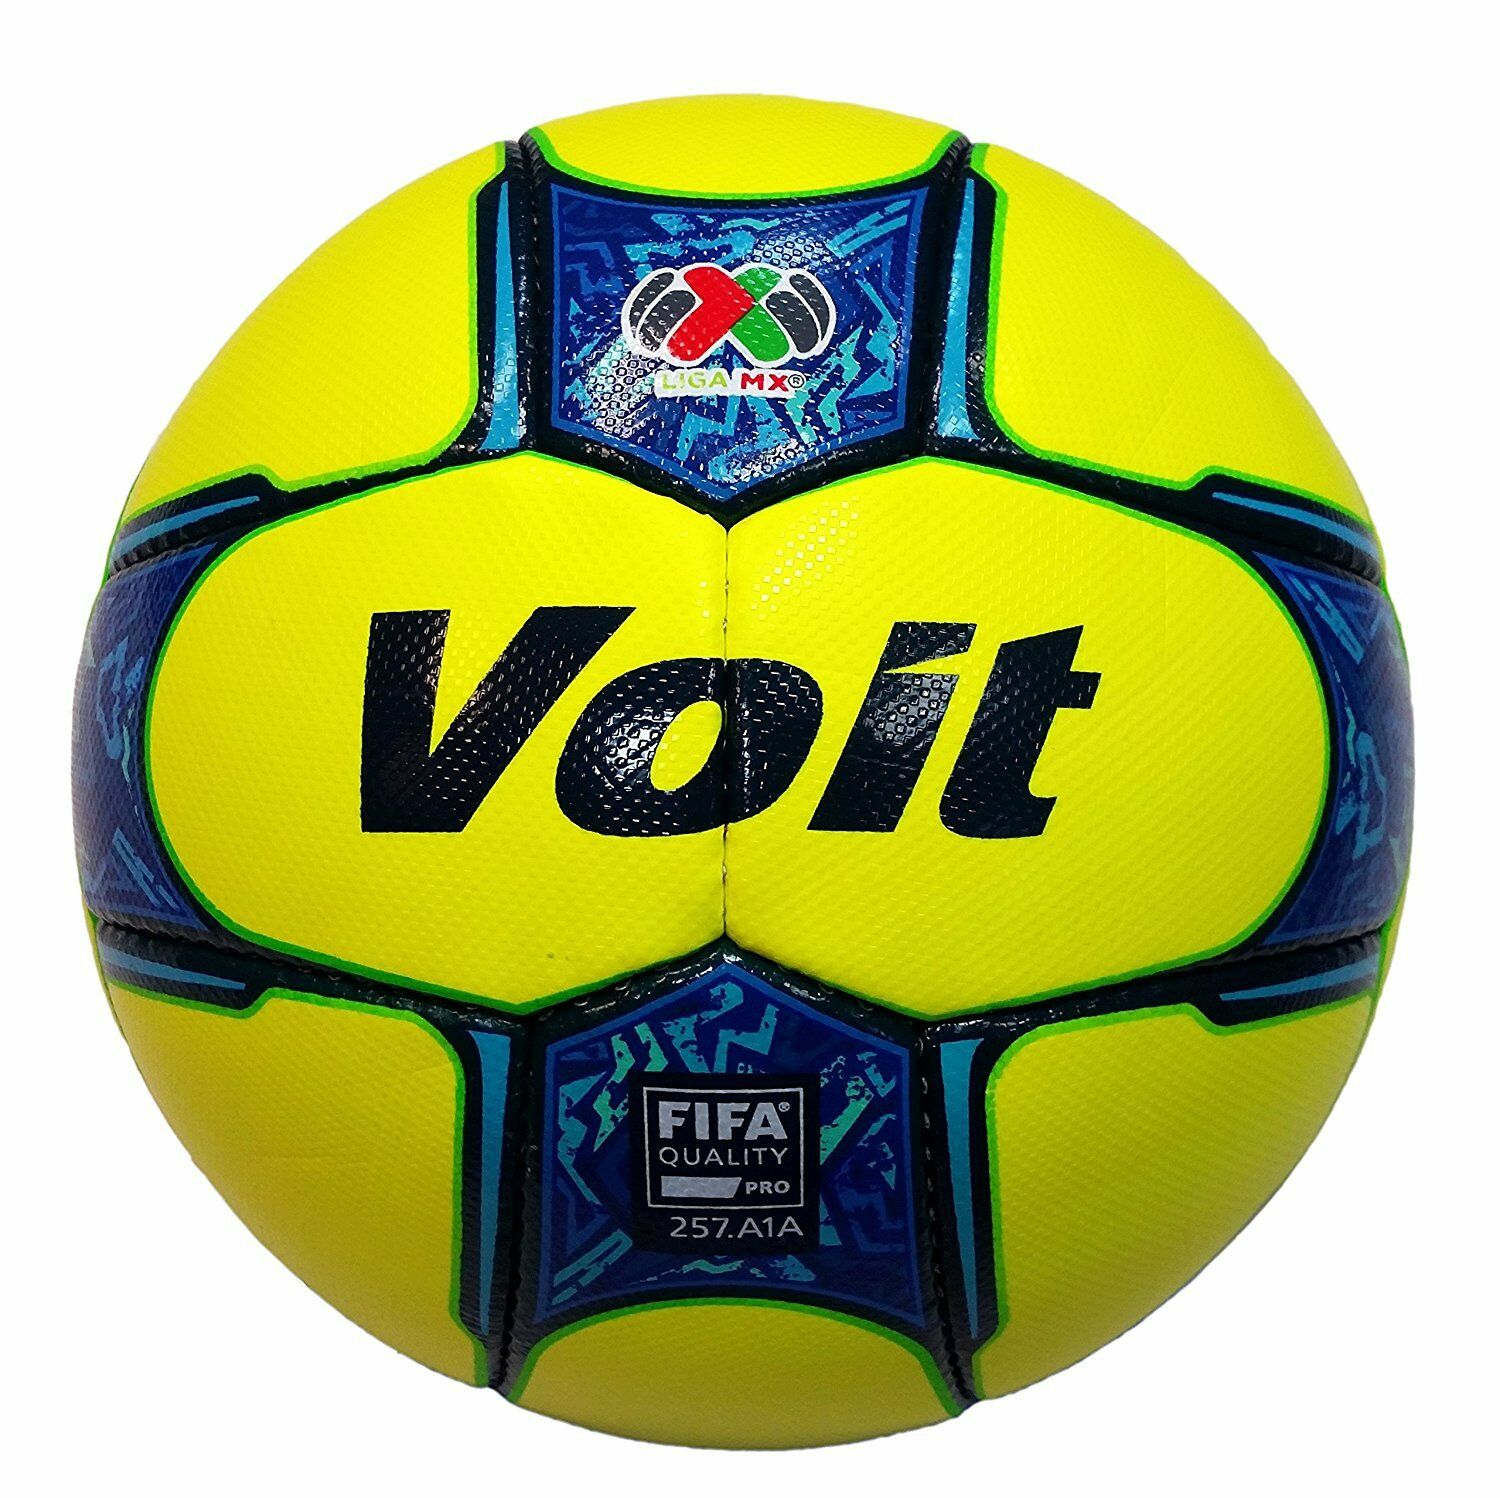 Voit Soccer Ball Clausura 2017 New Official Match Ball FMF Größe 5